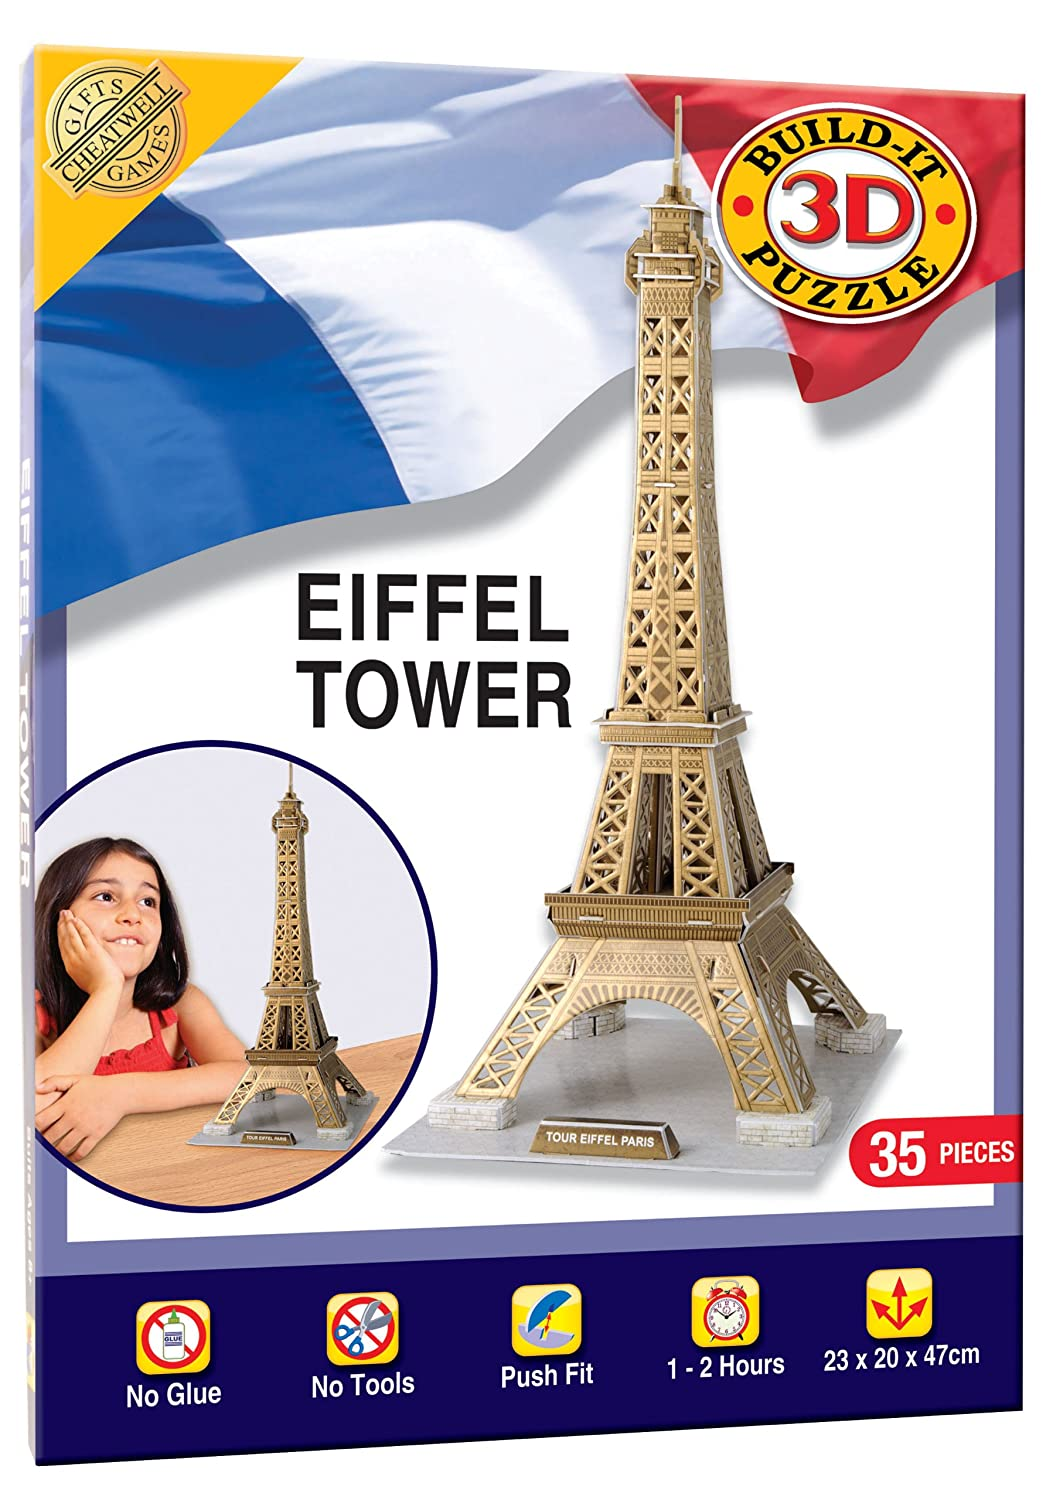 Cheatwell Games Eiffel Tower Build-Your-Own Giant 3D Kit: Amazon.co.uk:  Toys & Games